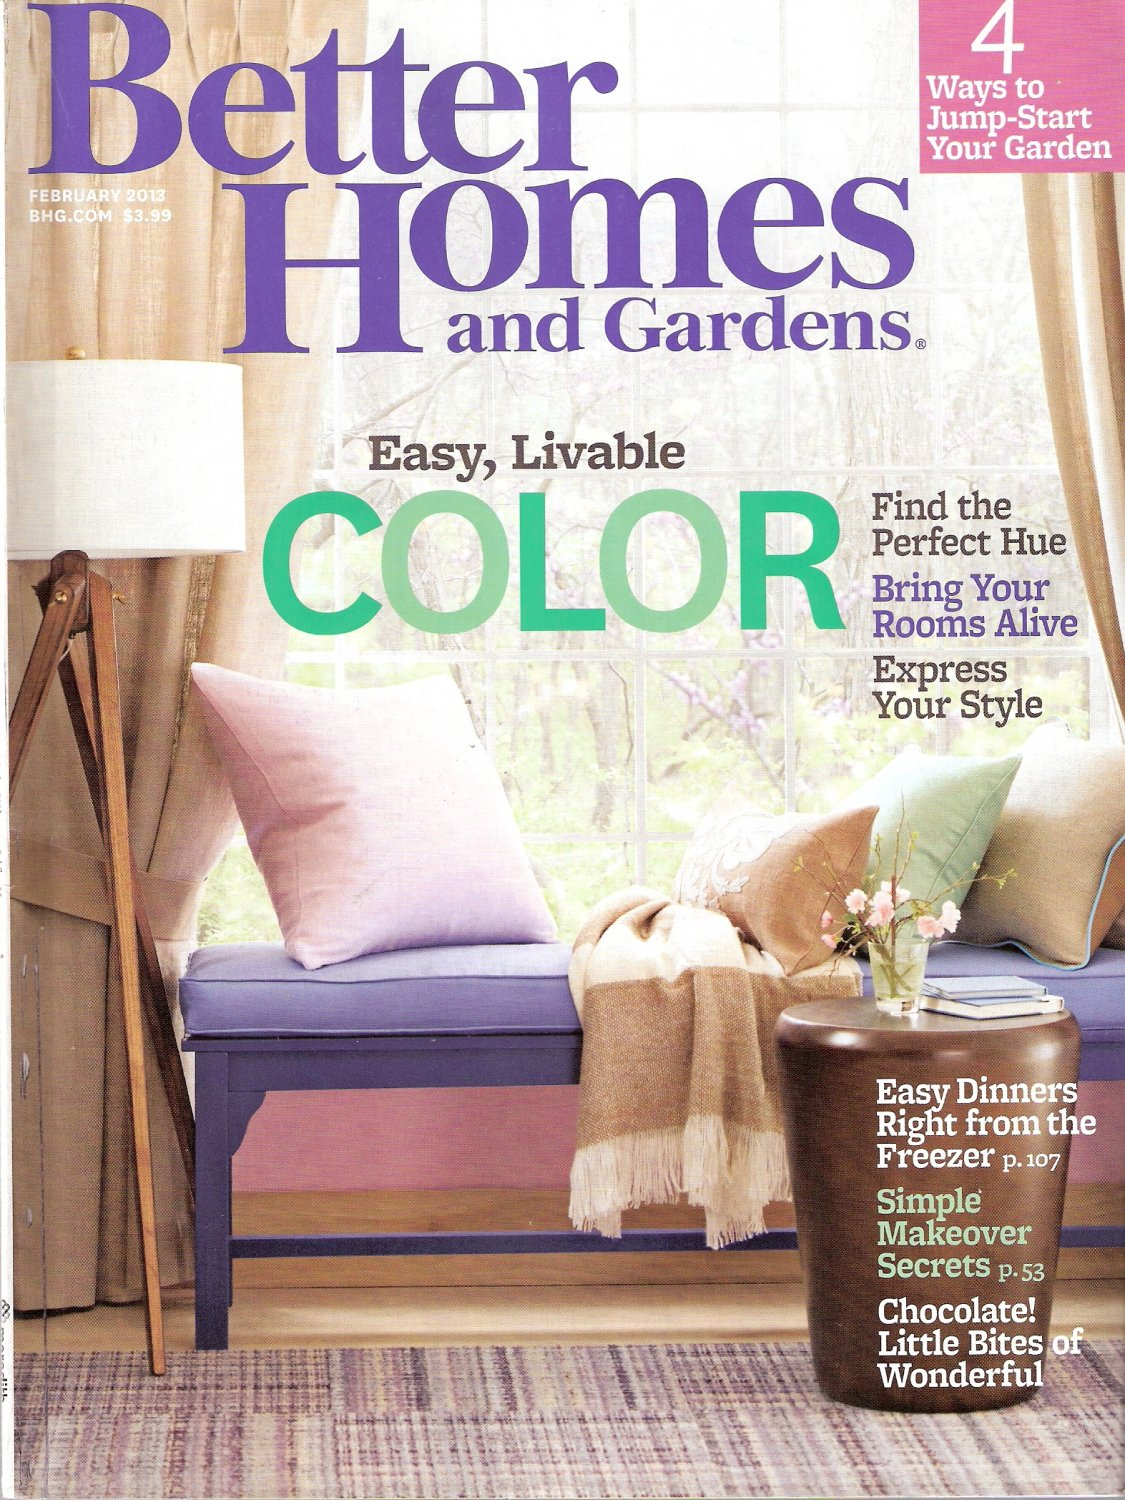 Better Homes and Gardens Magazine February 2013 Easy, Livable Color